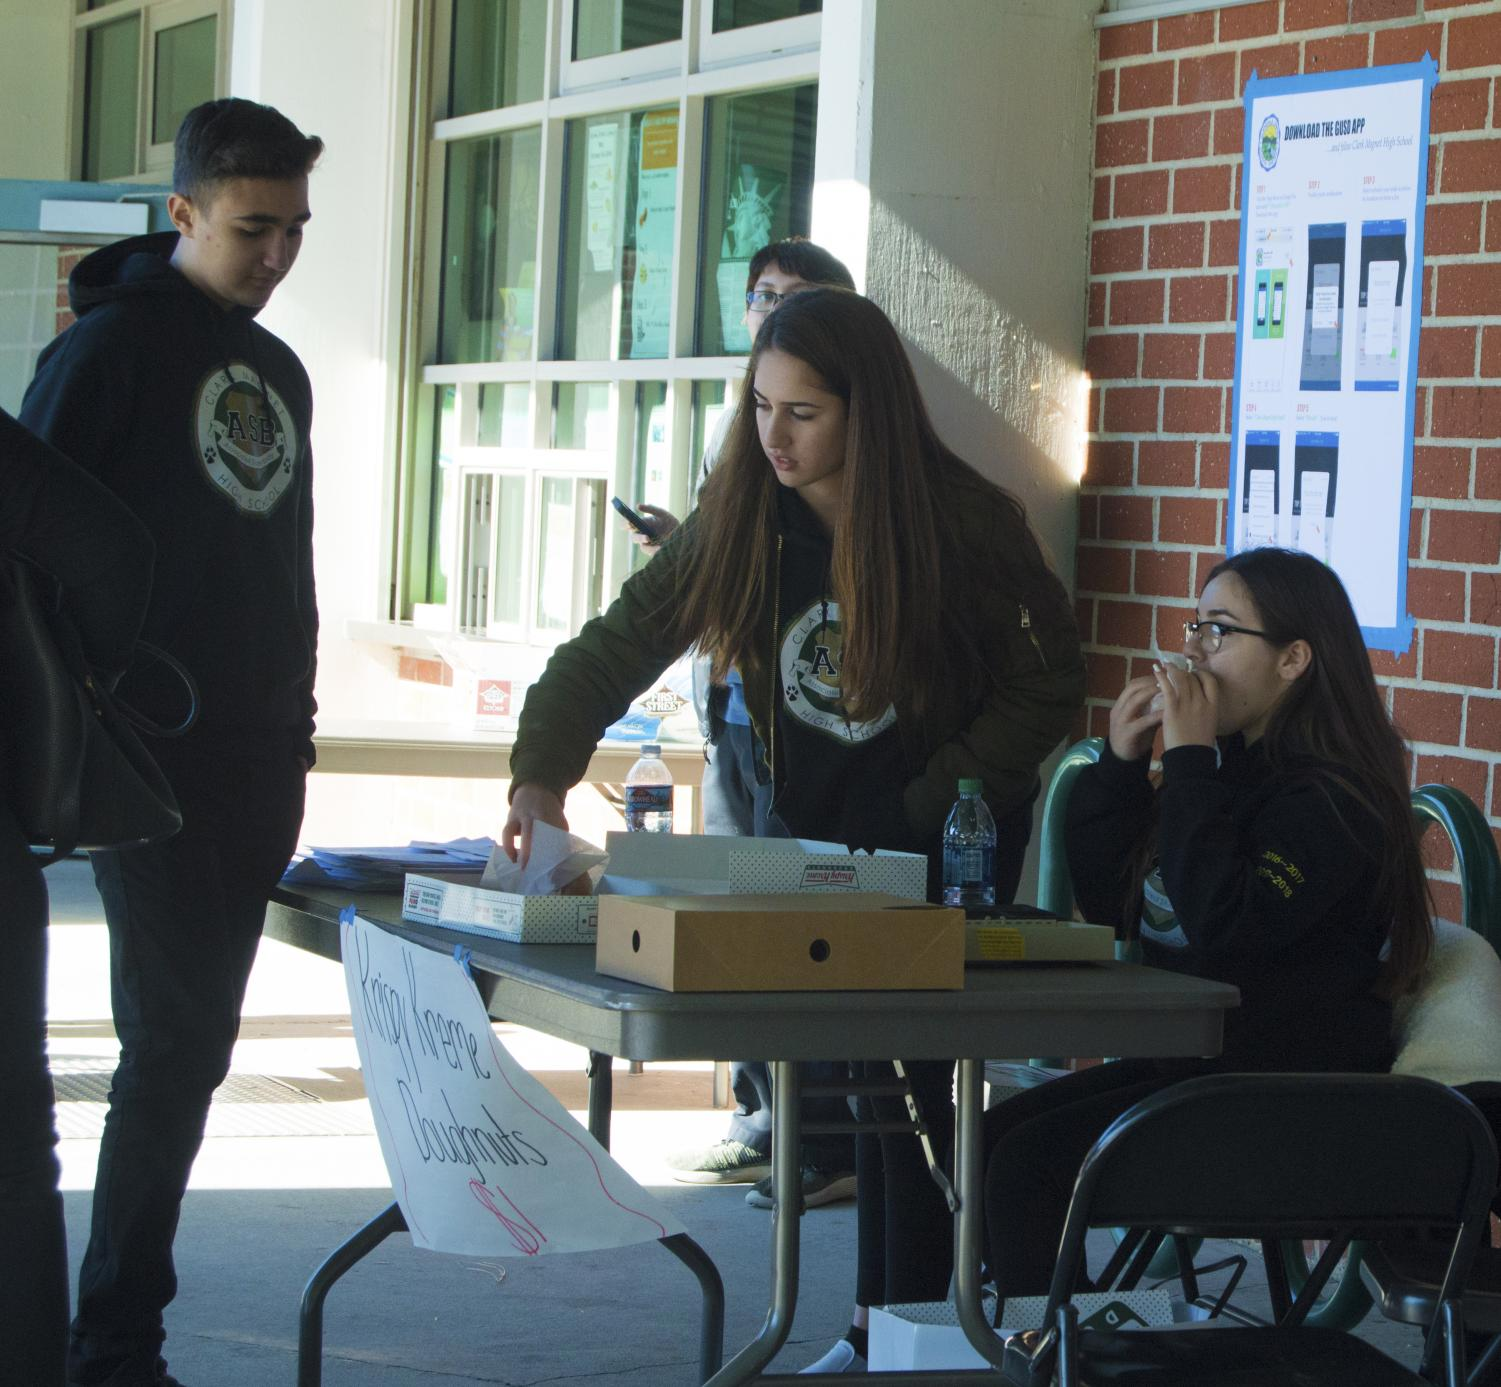 Clark students set up for the expo.